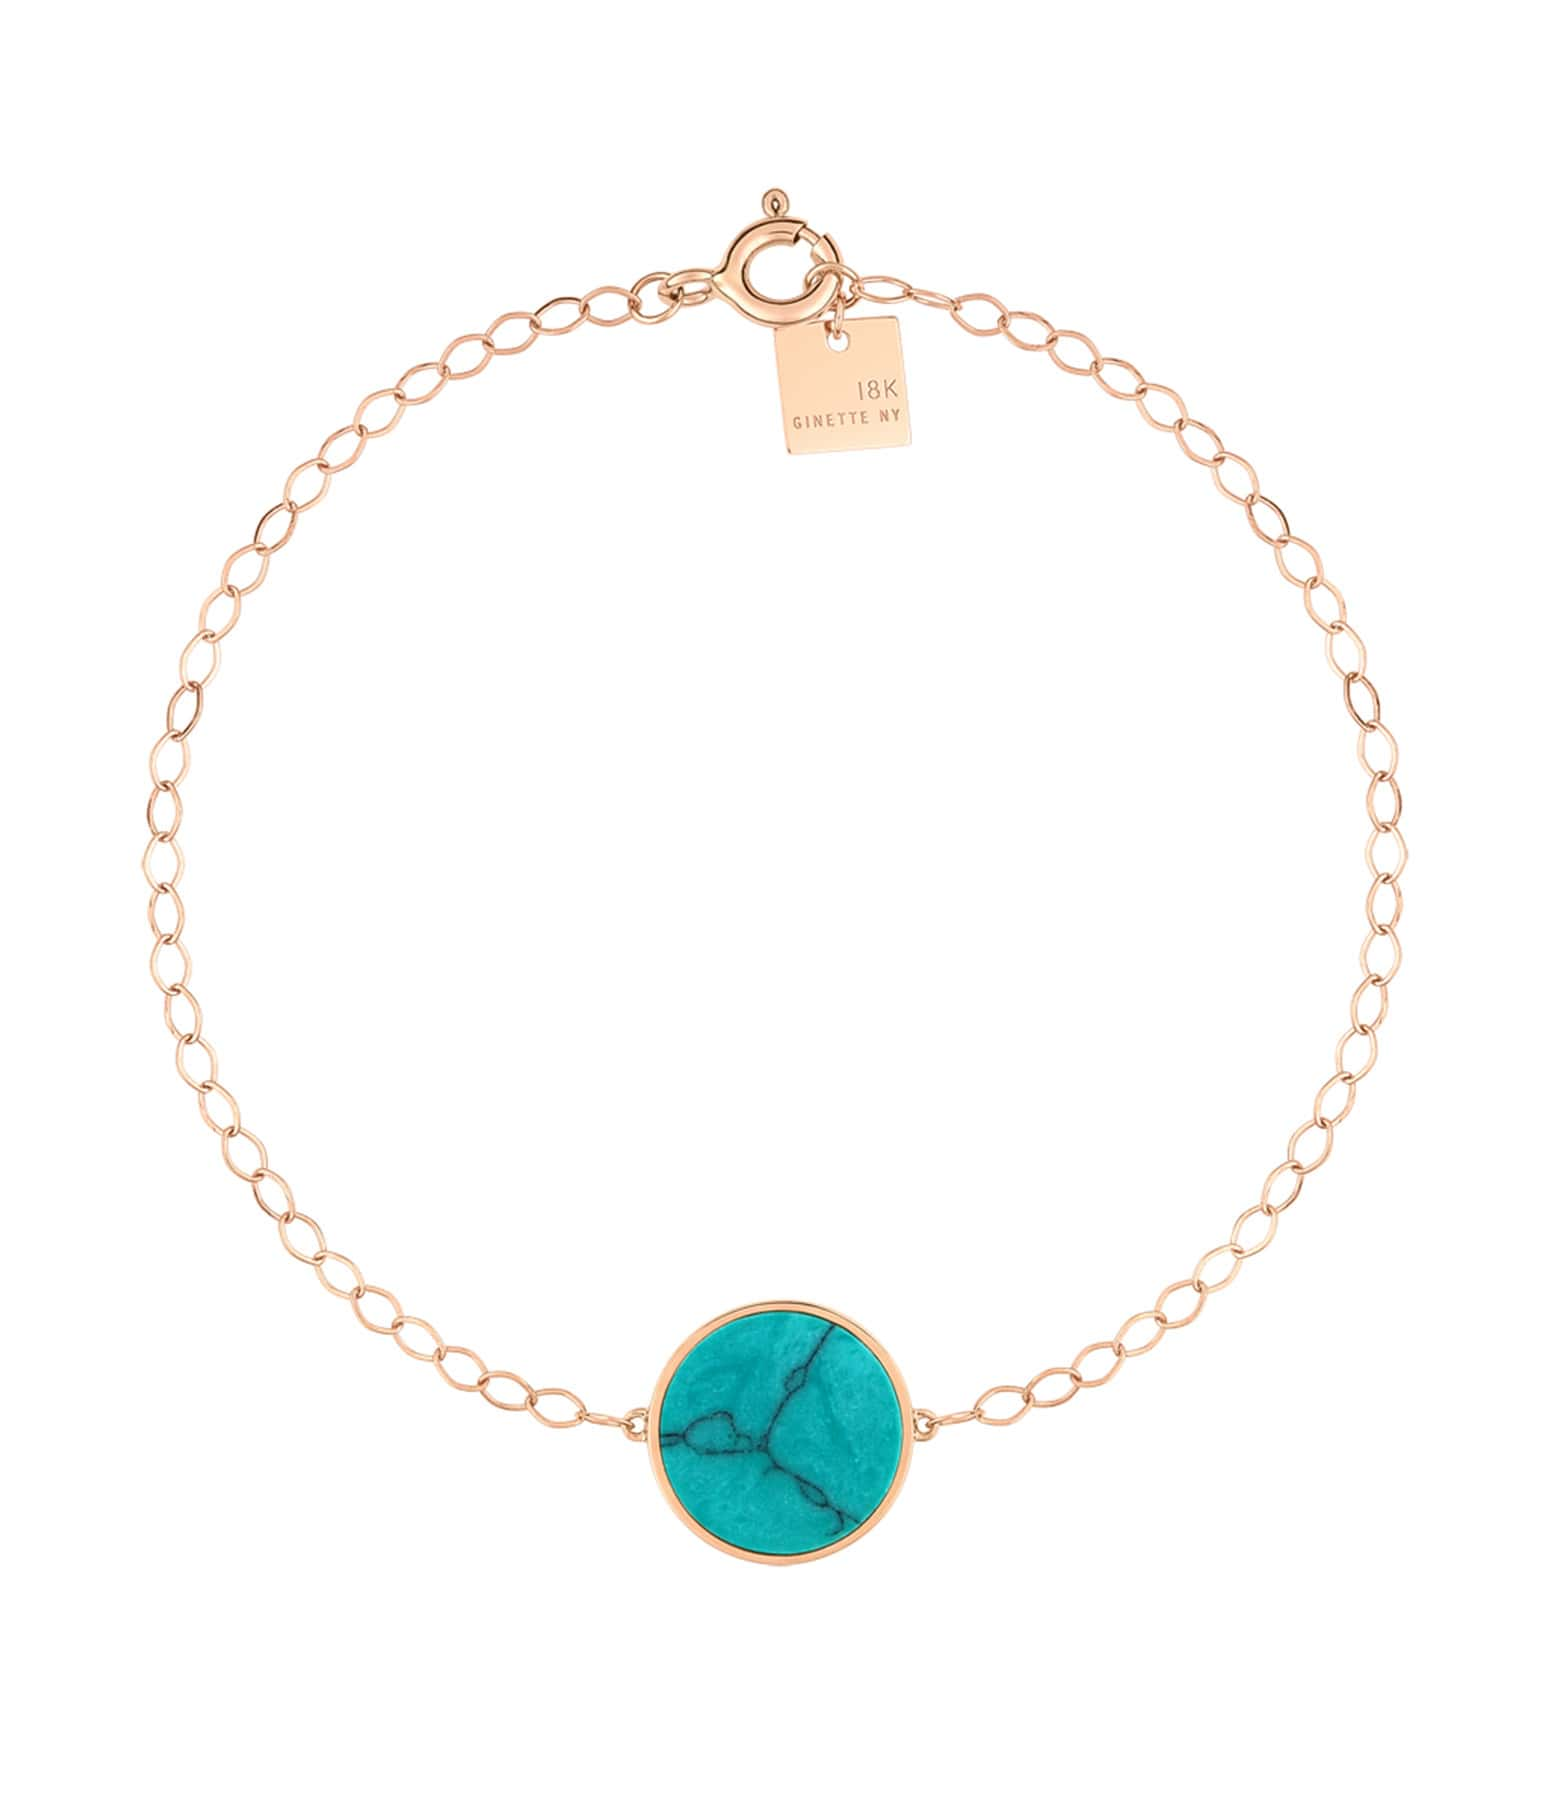 GINETTE NY - Bracelet Ever Disc Or Rose Turquoise